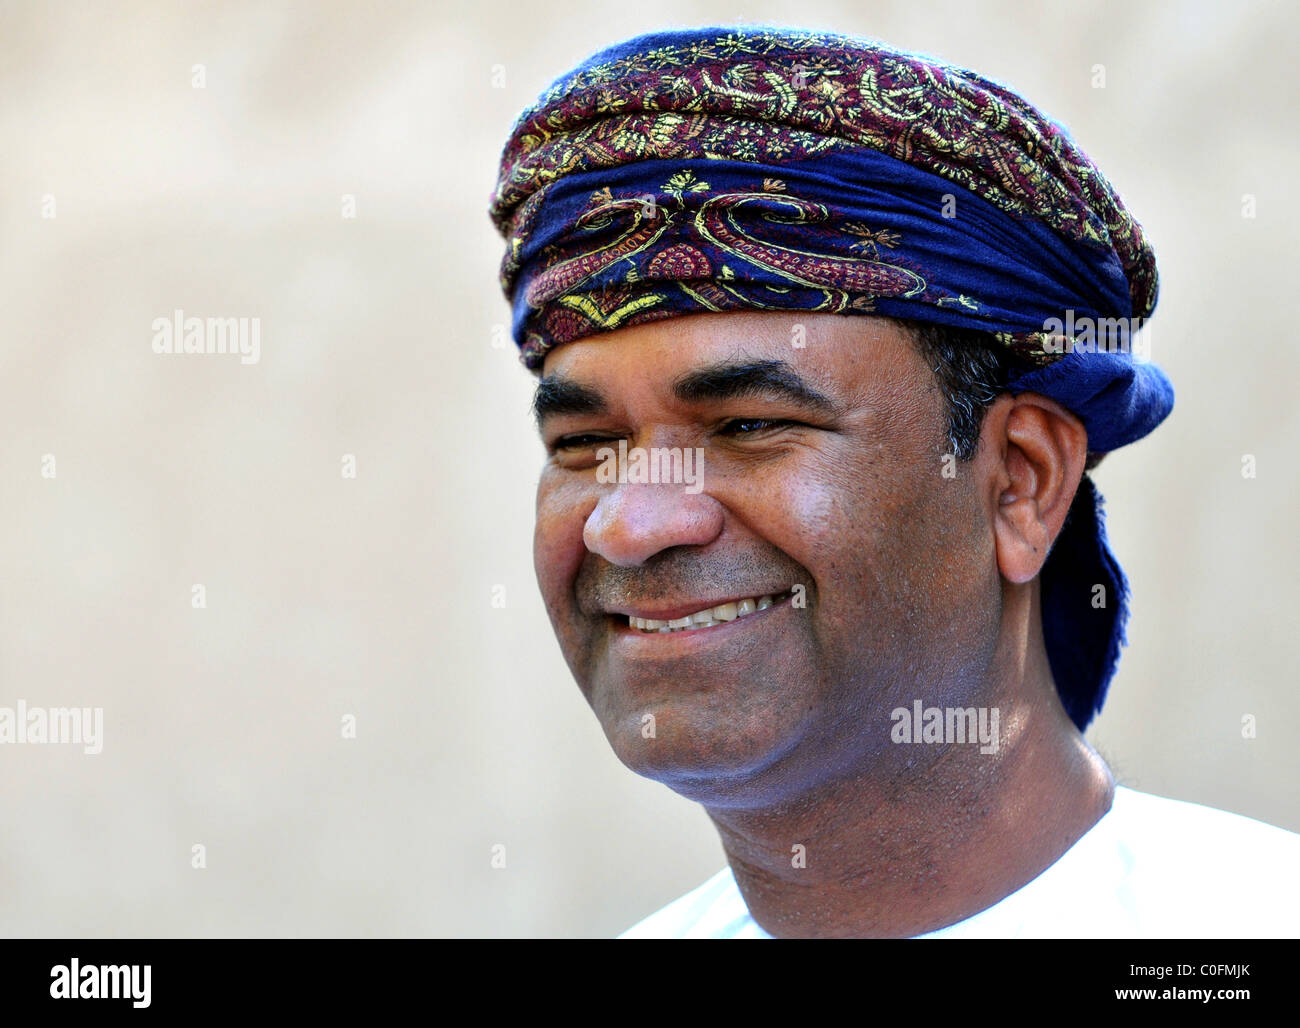 Local man. The Sultanate of Oman. - Stock Image